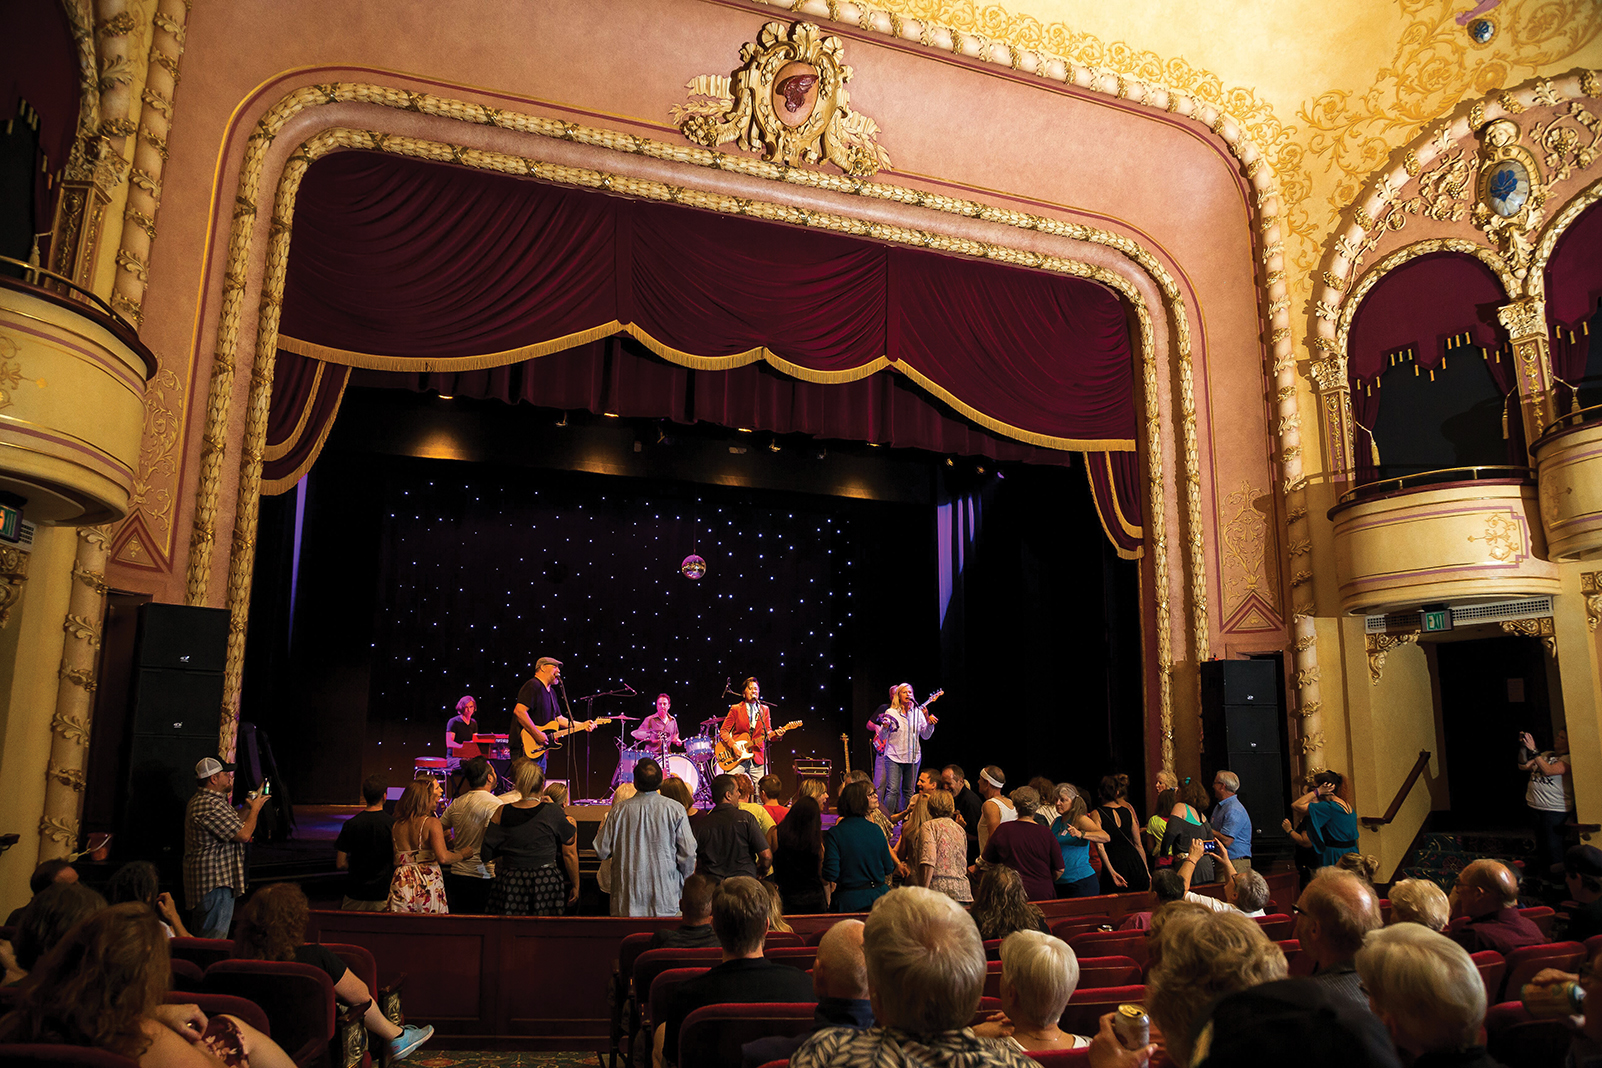 Sheldon Theater in Red Wing